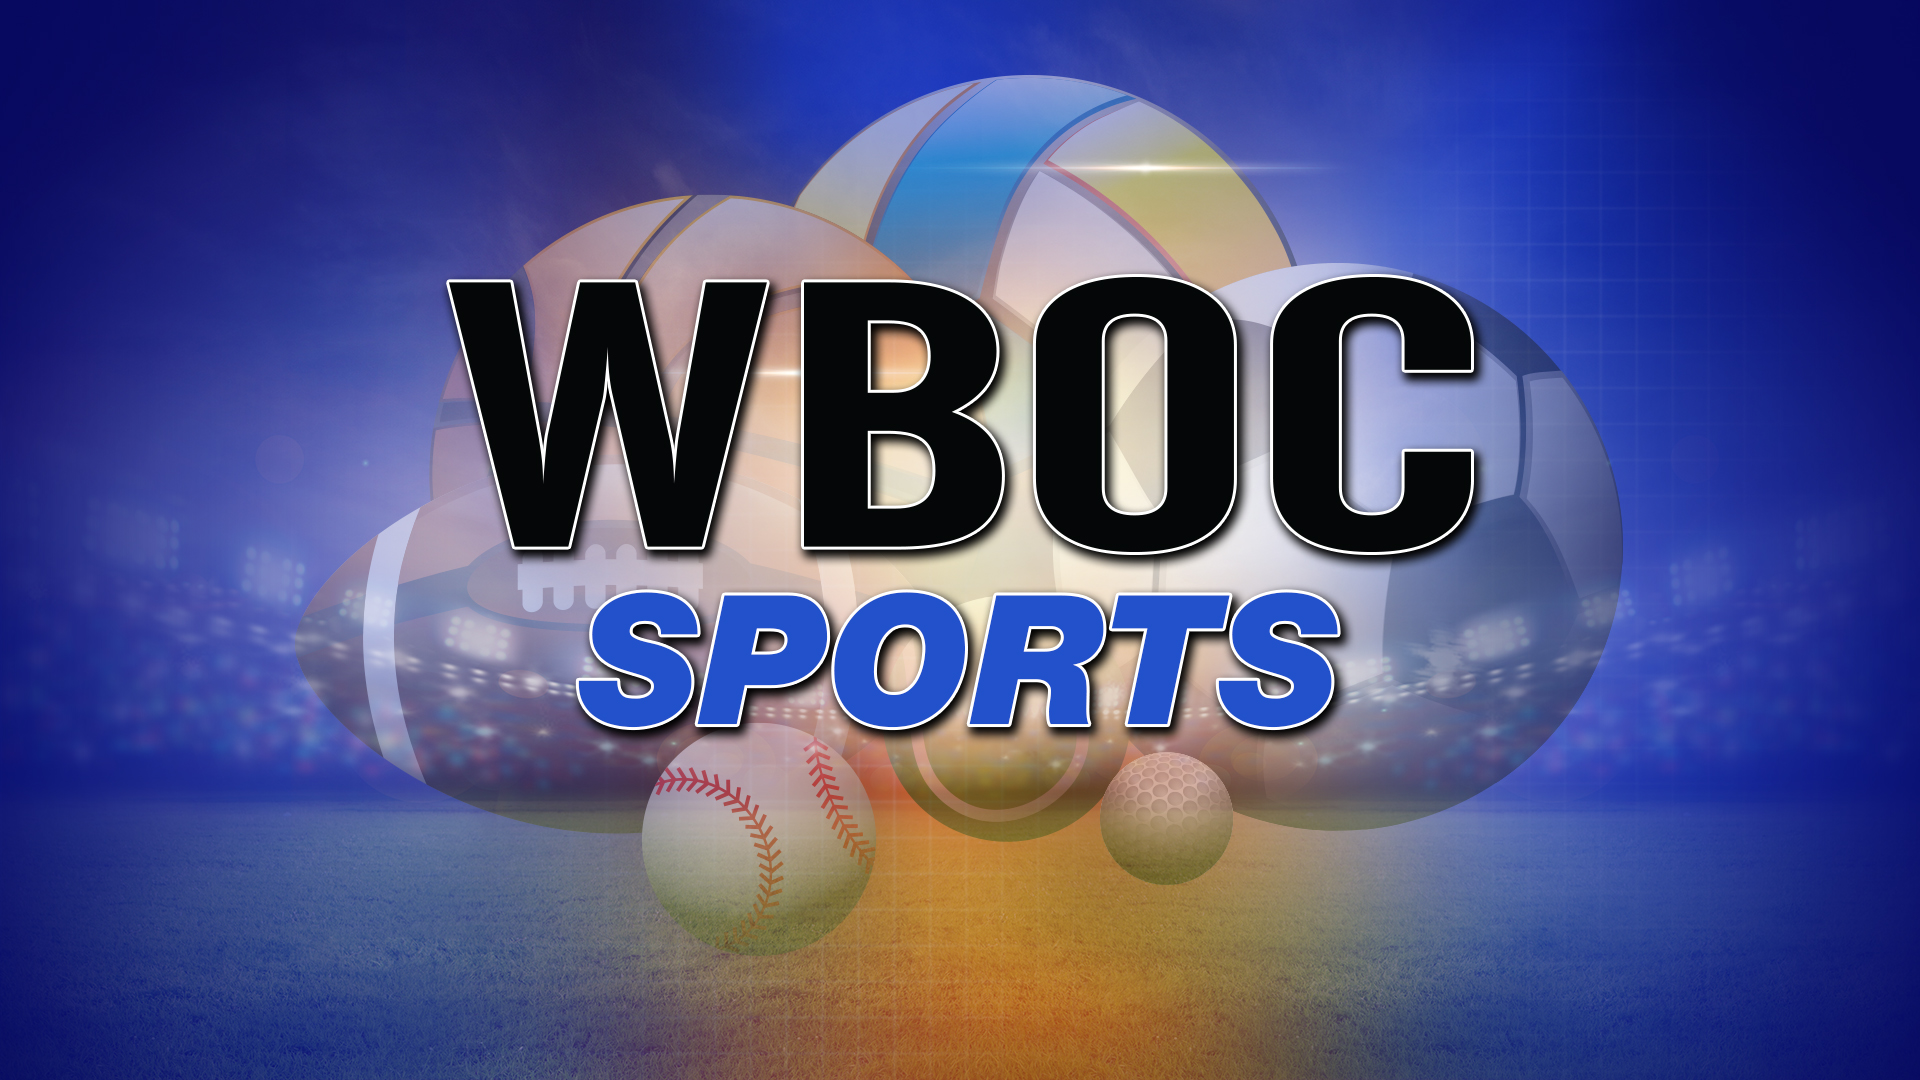 WBOC Sports Report: Wednesday, November 25, 2015